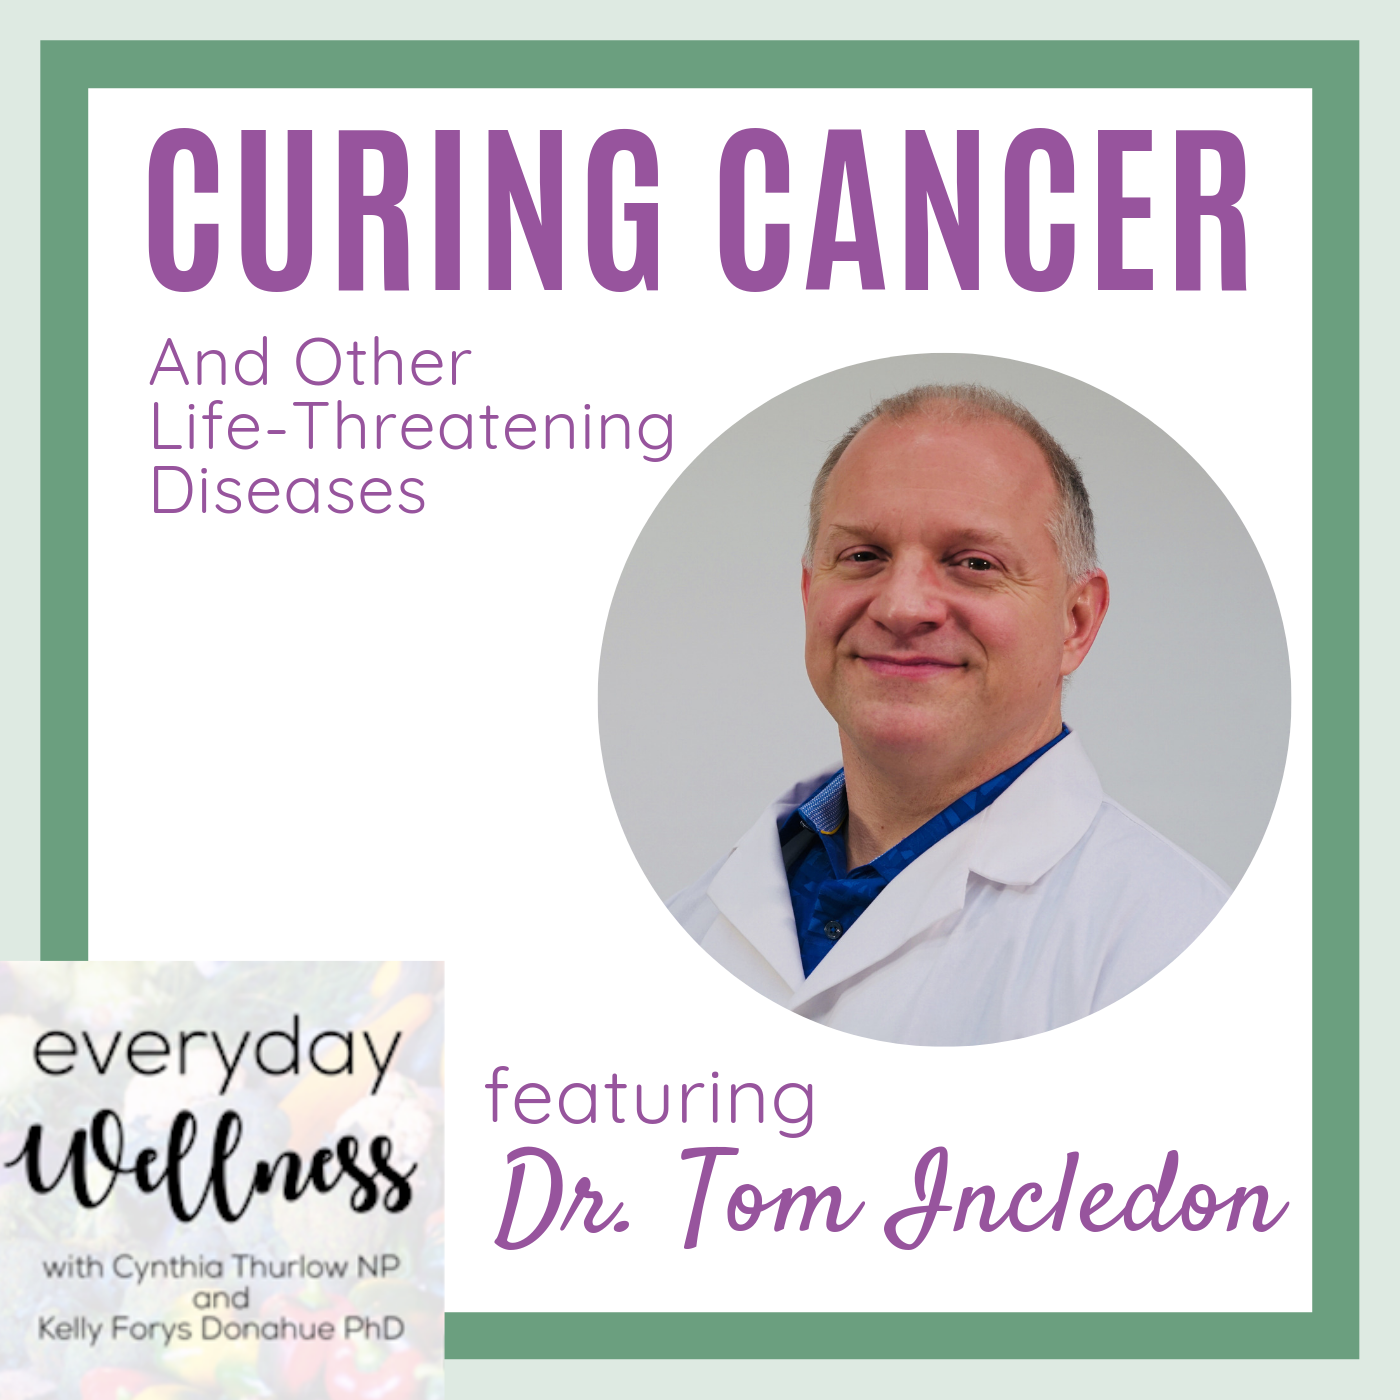 Episode 58: Curing Cancer and Other-Life Threatening Diseases